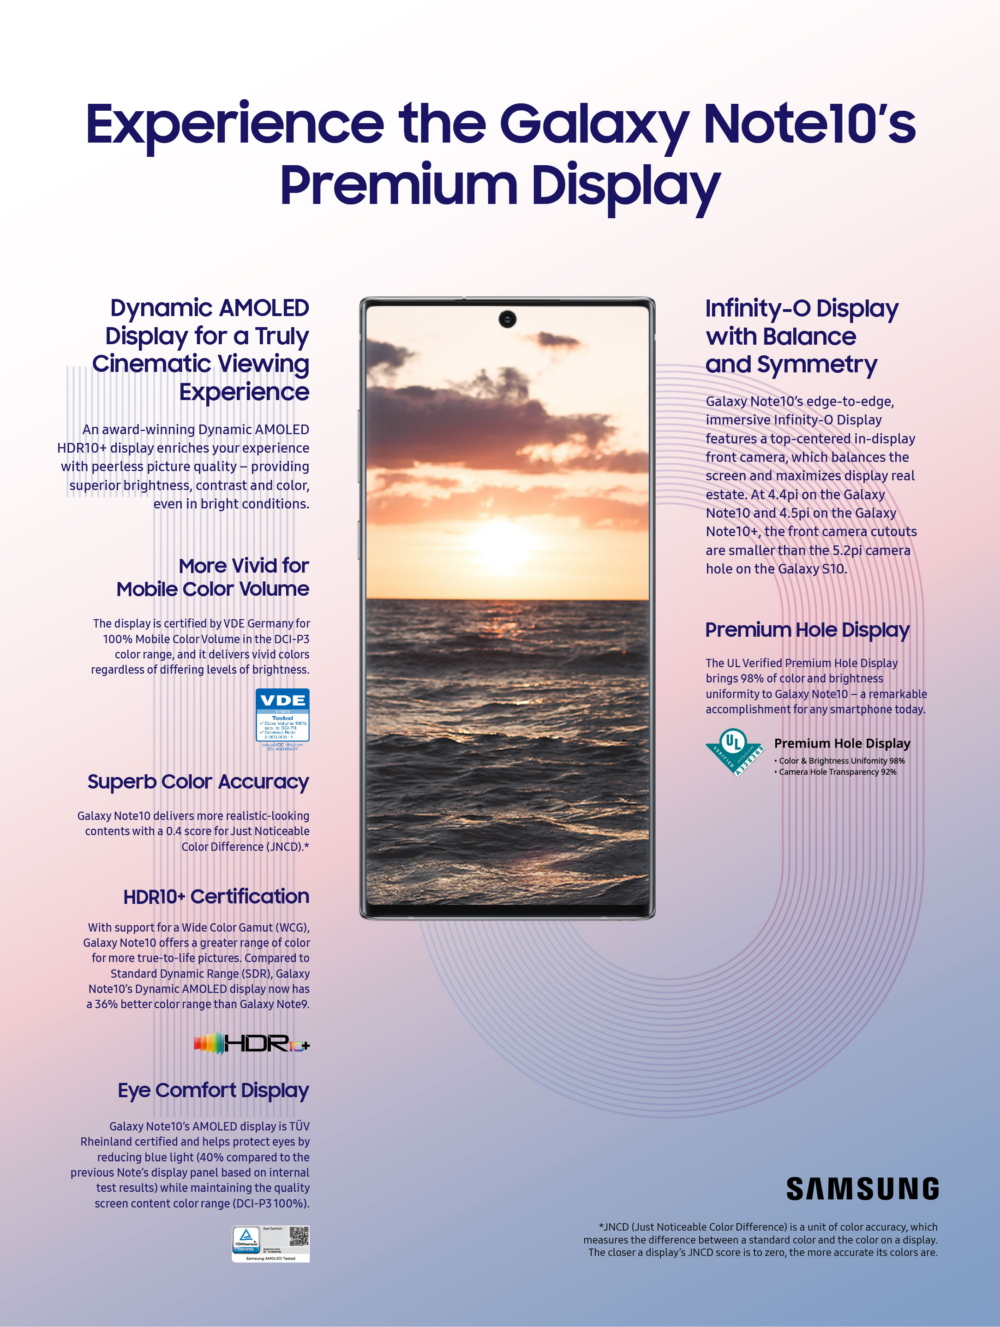 [Infographic] Experience the Galaxy Note10's Premium Display – Samsung Global Newsroom